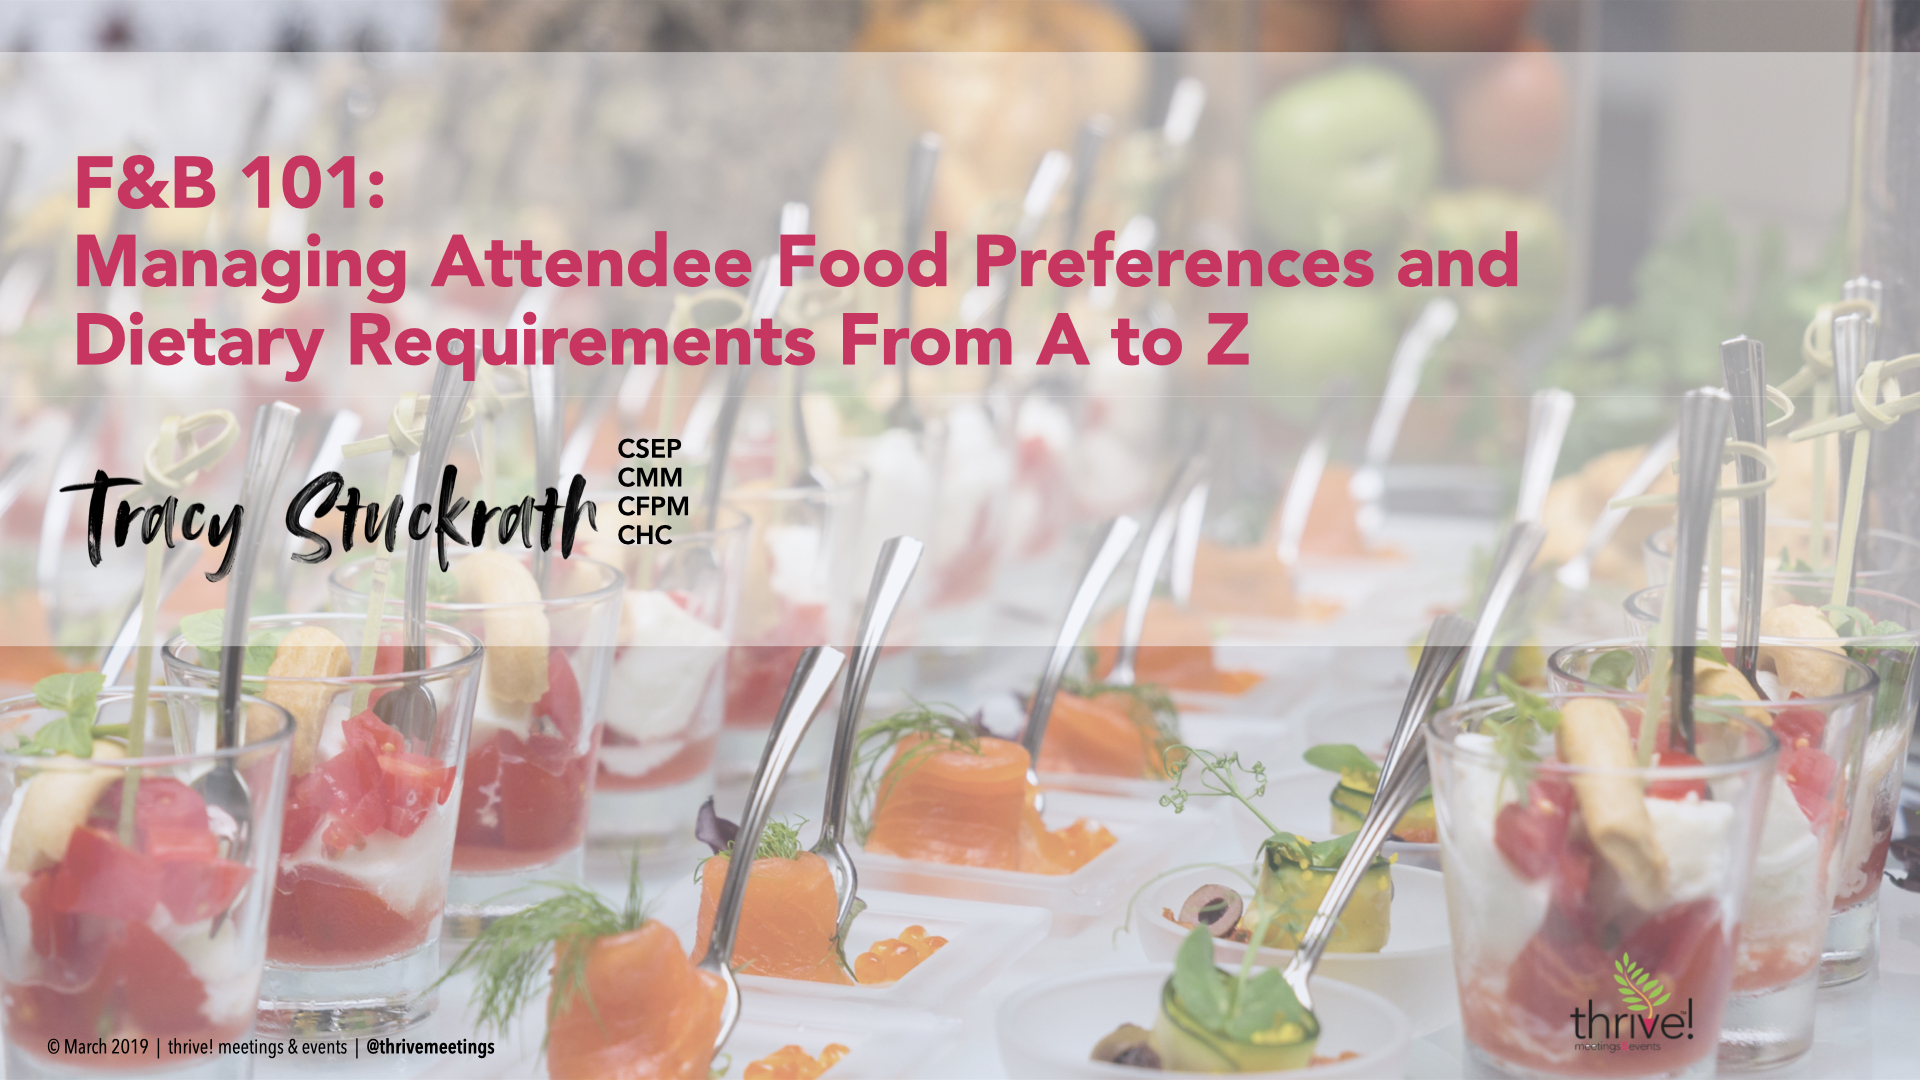 F&B 101: Managing Attendee Food Preferences and Dietary Requirements from A to Z